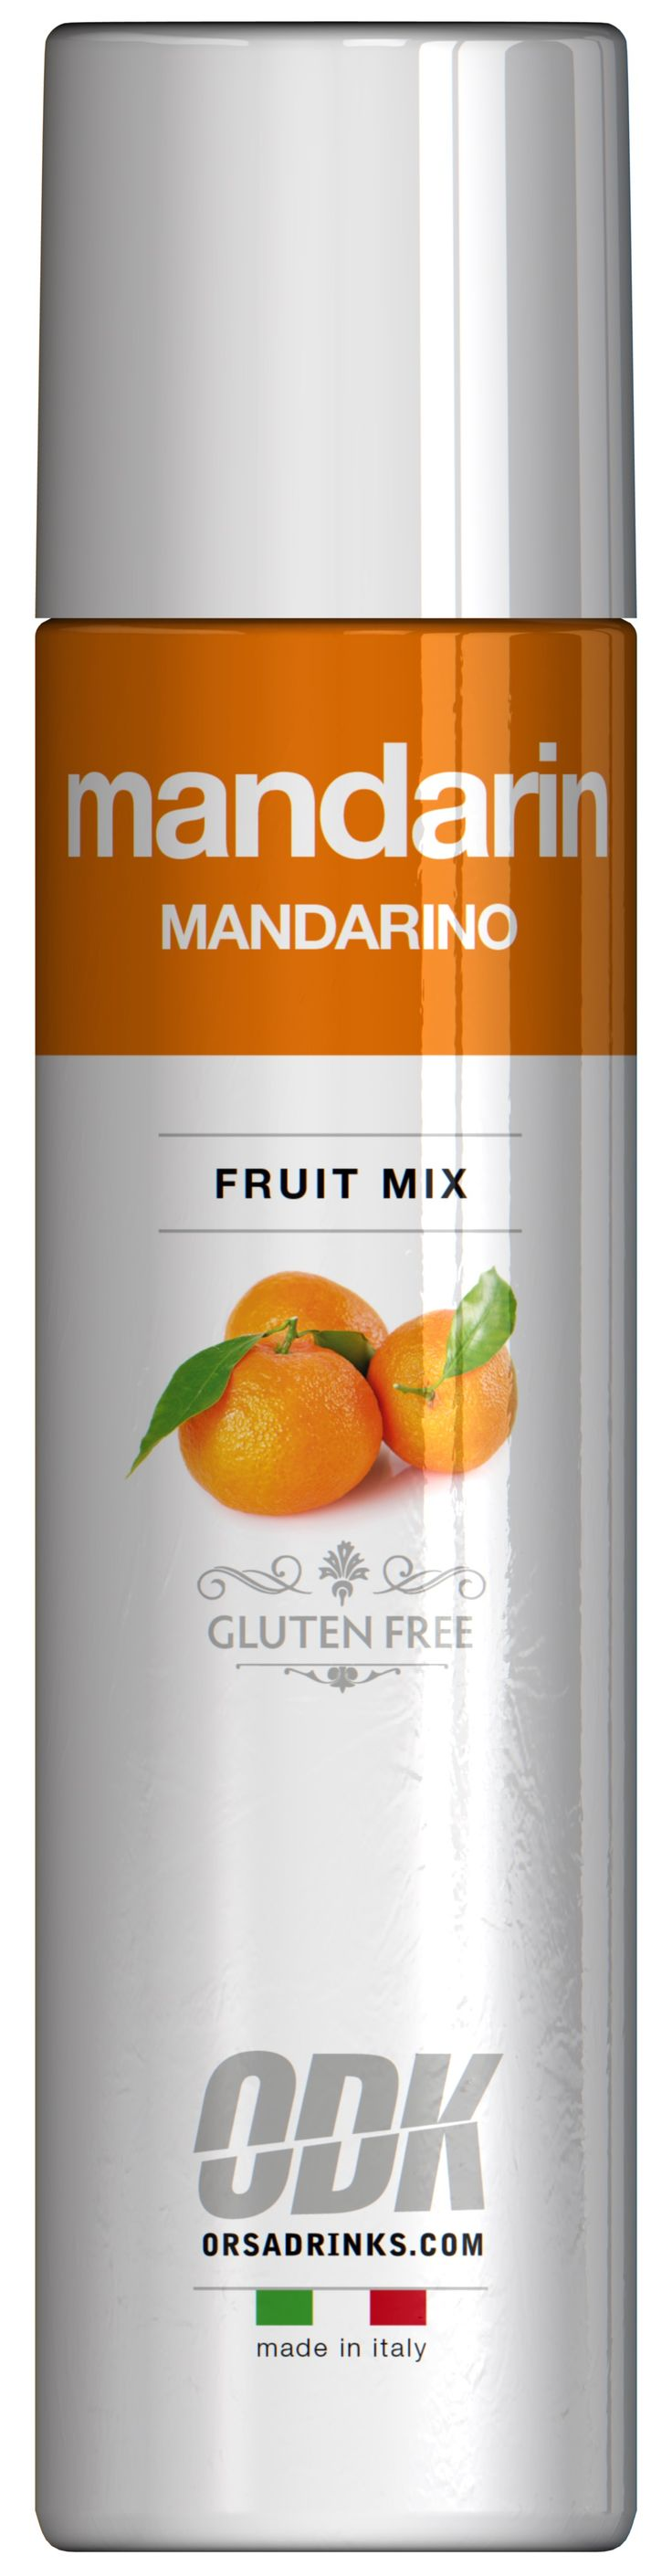 Mandarin fruit puree by ODK available at Granikal